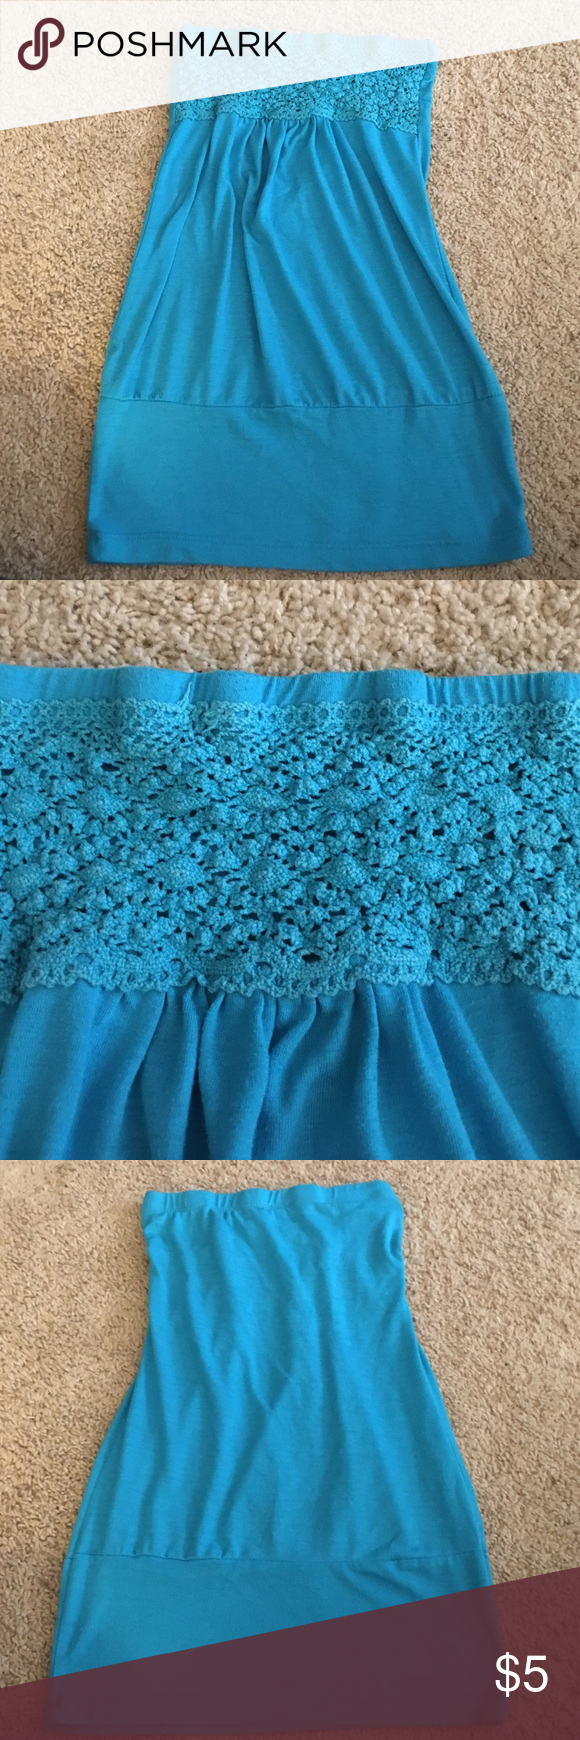 ❗️$3 sale- must be bundled❗️Strapless Tank ❗️$3 sale for the month of July. MUST be bundled with at least 1 other item❗️Strapless baby blue tank. Fitted in the breast & bottom areas, loose throughout the rest. Cute tank on a summer day! Worn, but still in great condition! No tears/marks. Tag is faded so I don't know the brand or size, but am assuming it is a size small because it fits like that. Tops Tank Tops